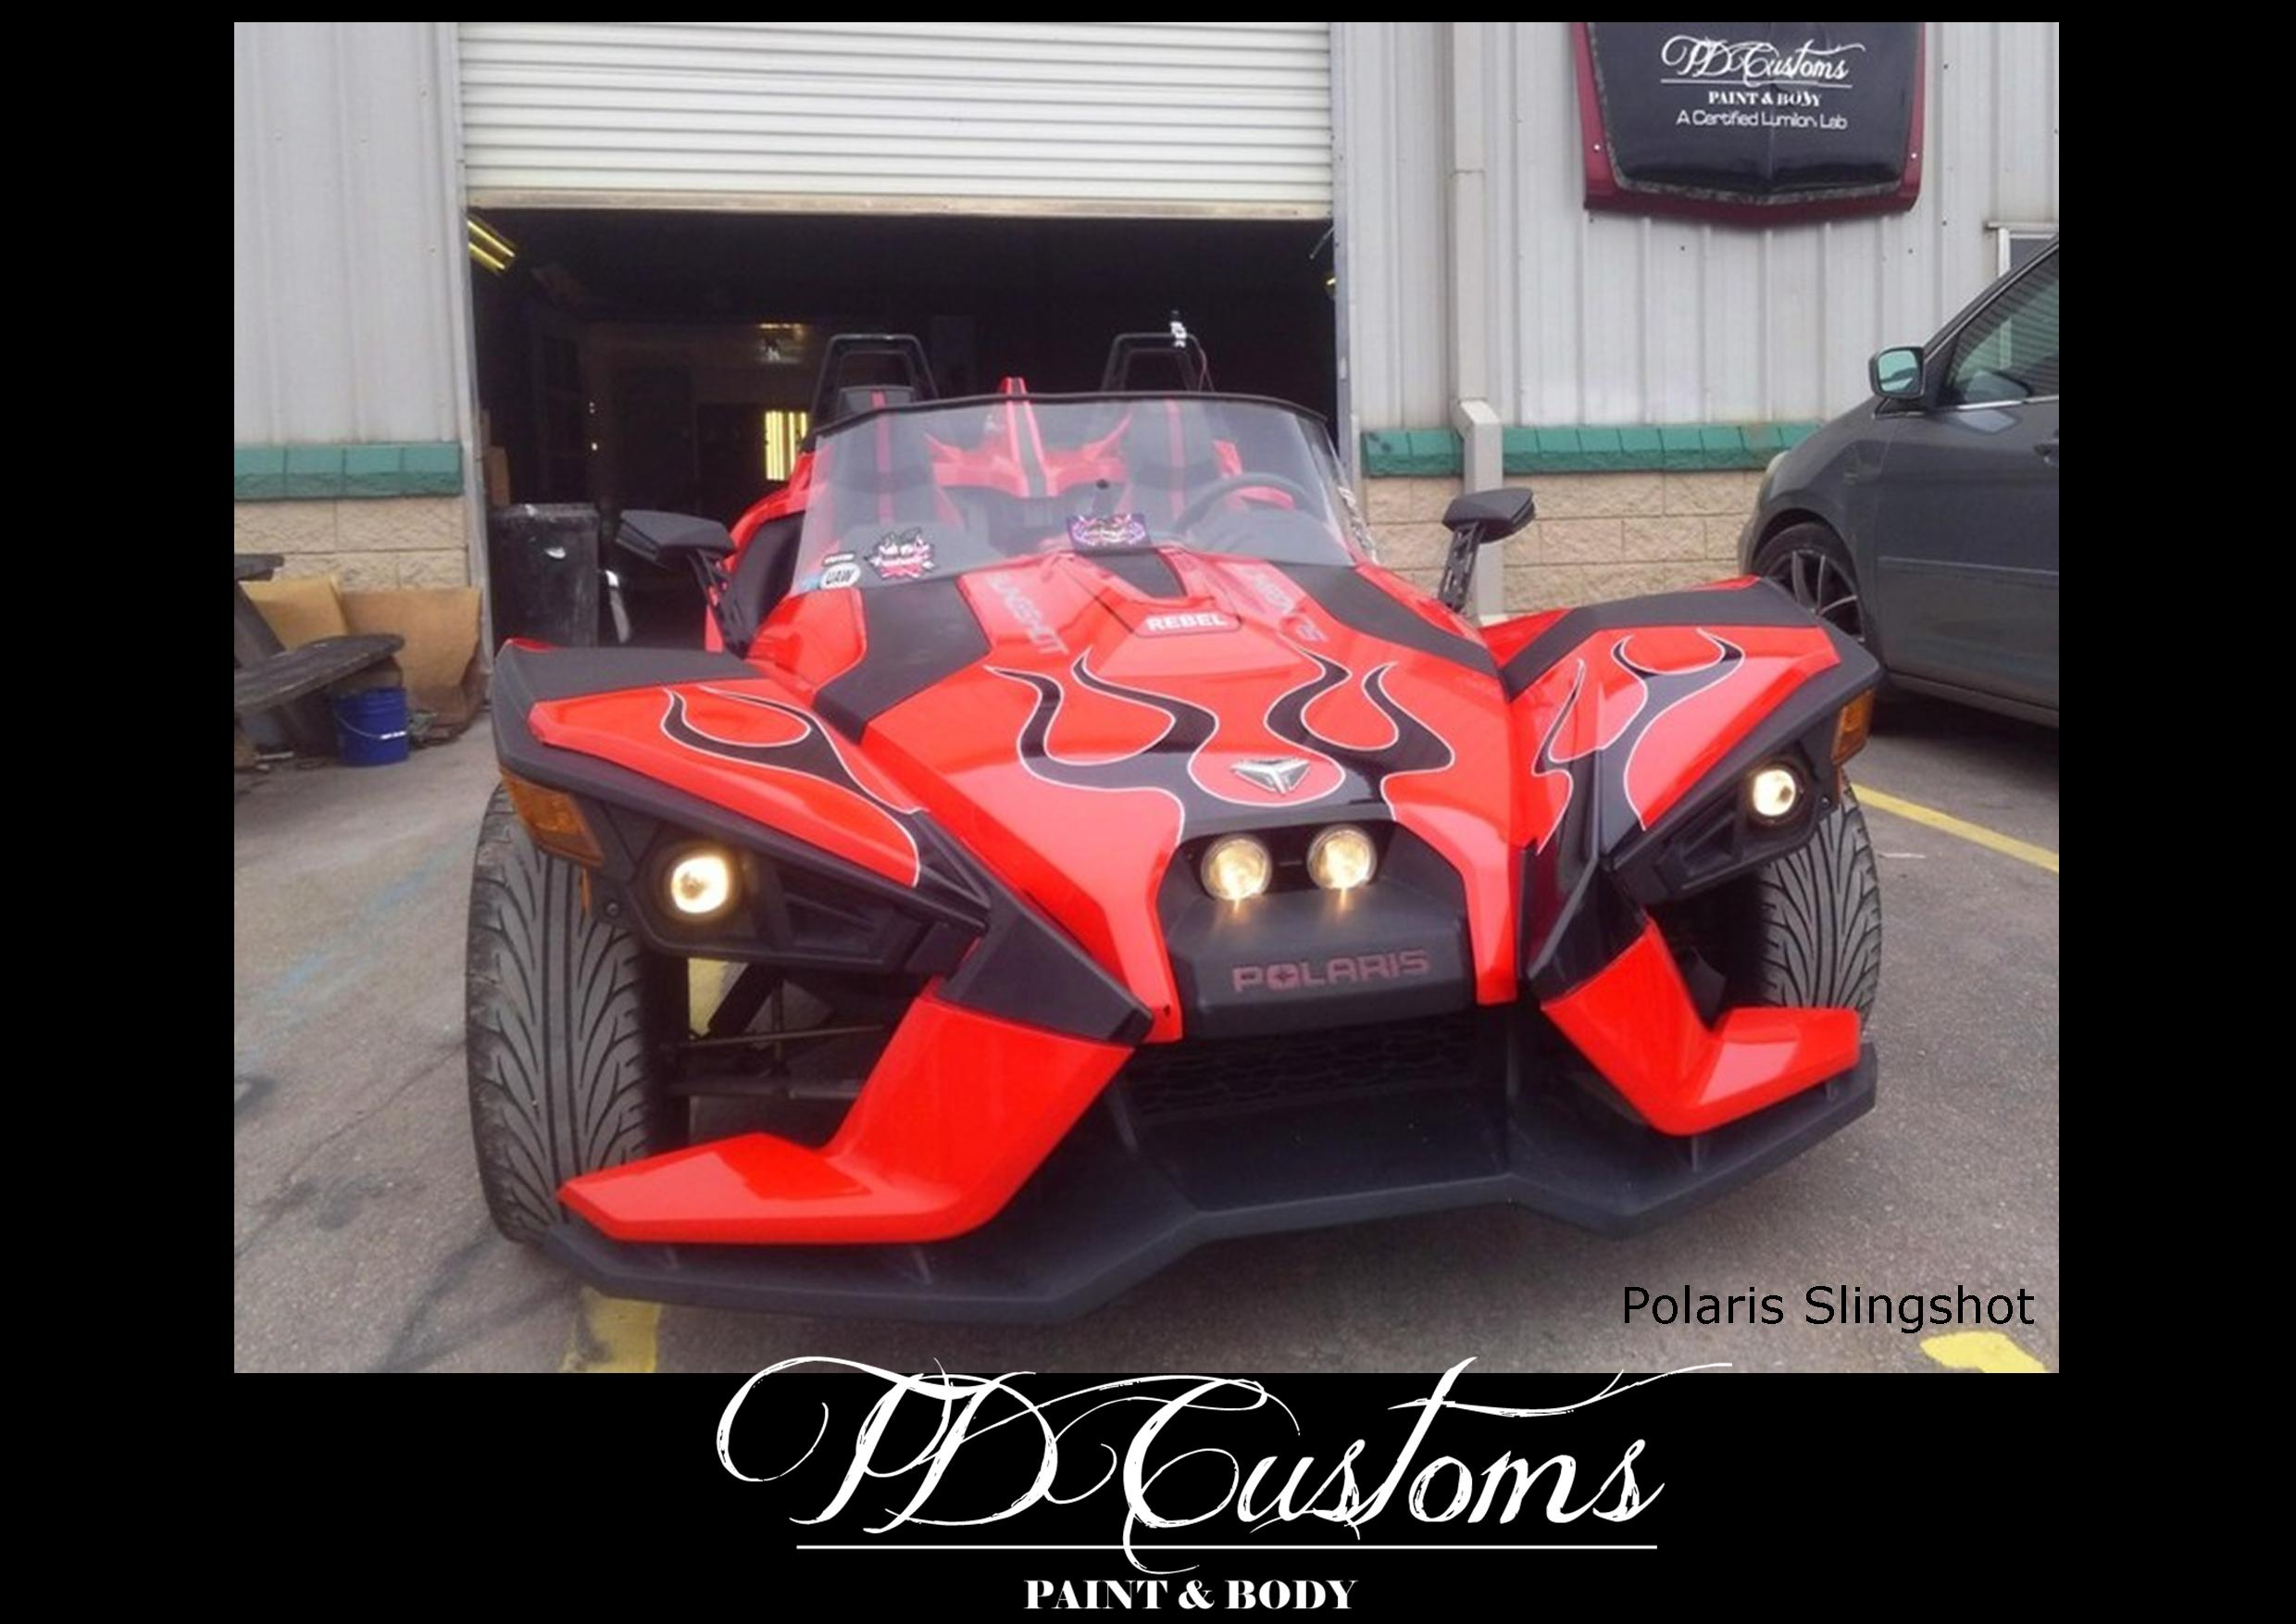 TD Customs 2019 Calendar Custom Paint Polaris Slingshot